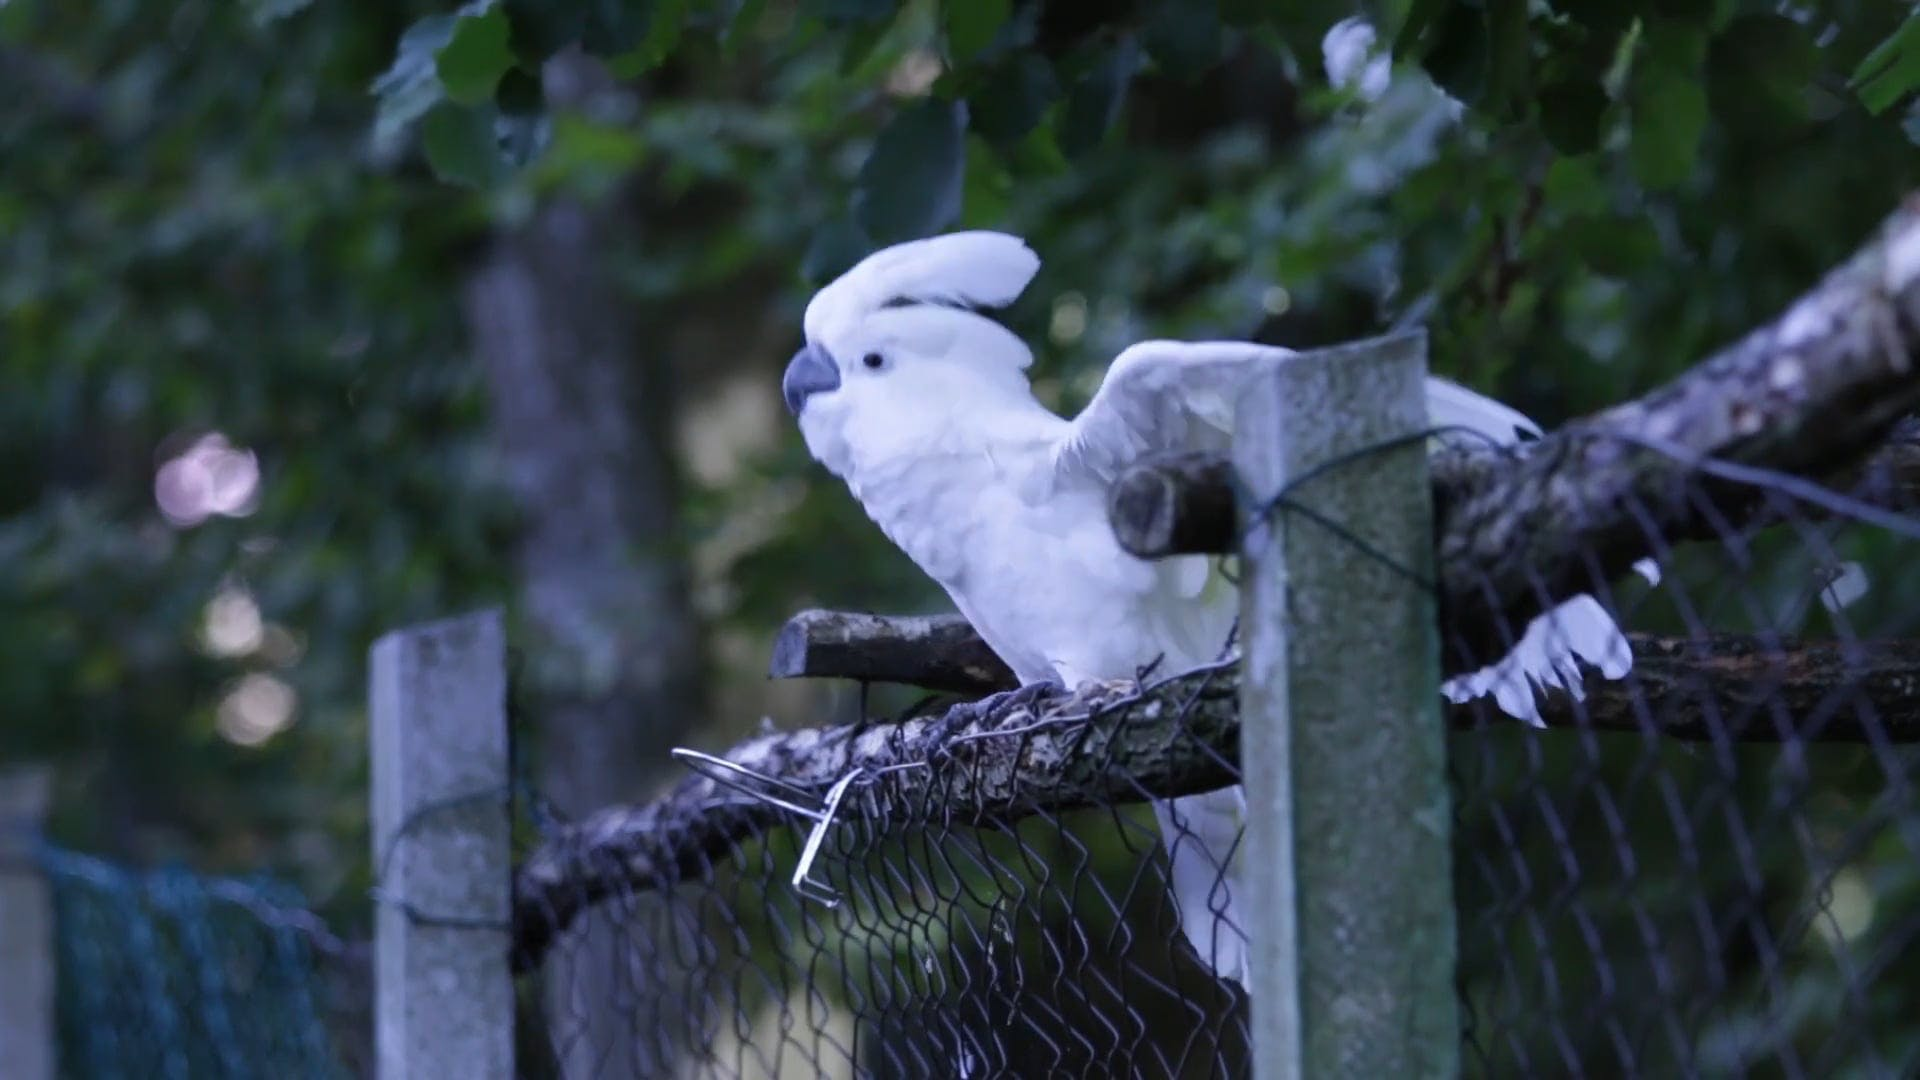 Dancing White Parrot